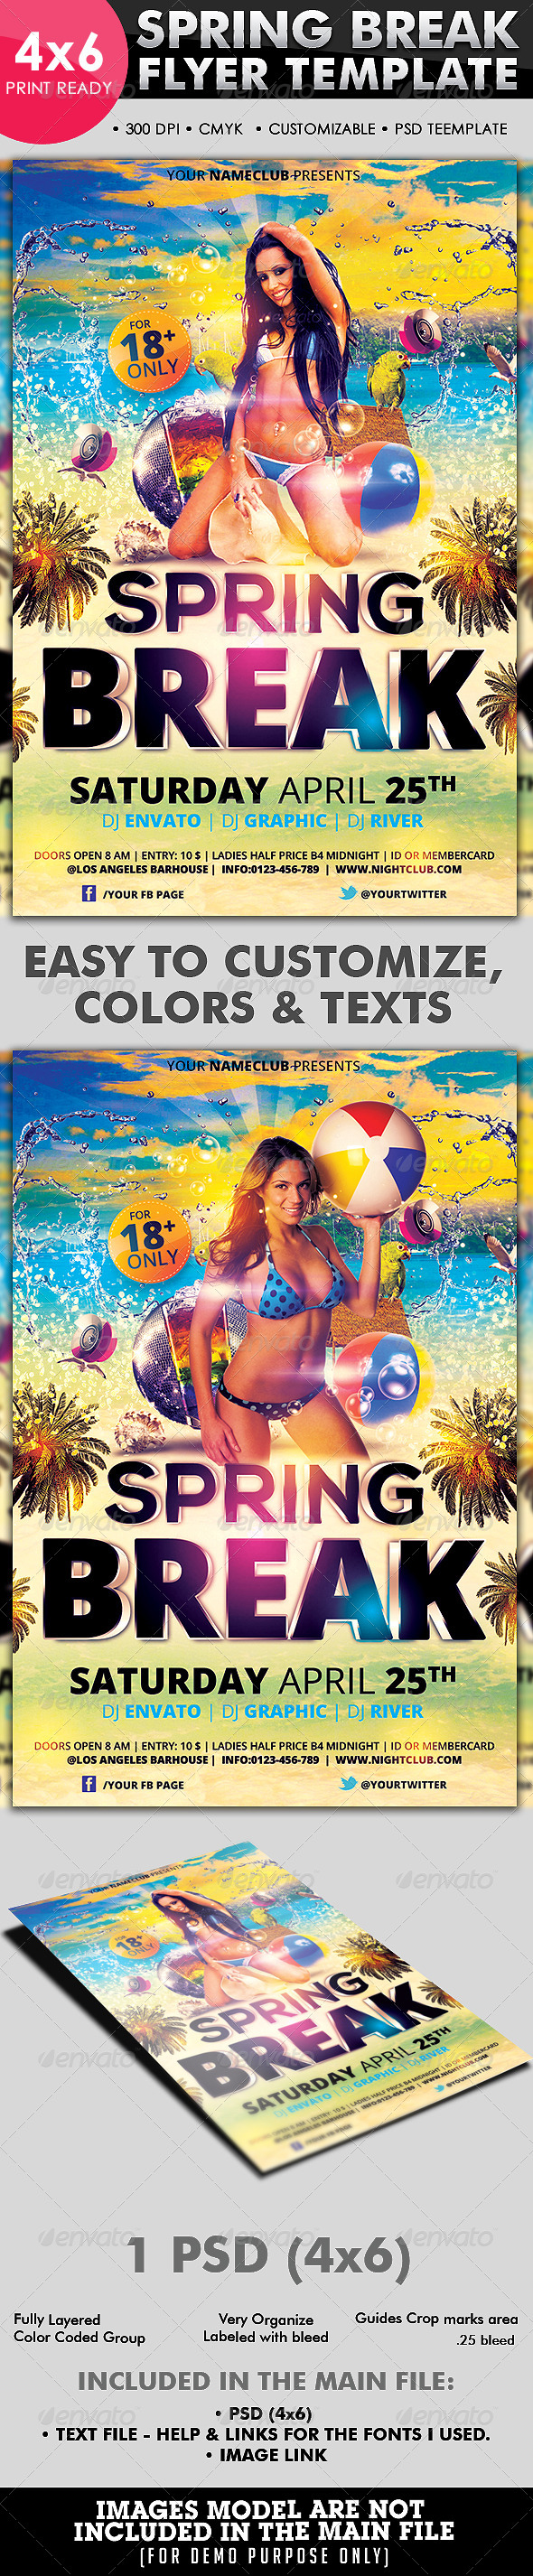 Spring Break Flyer Template - Flyers Print Templates